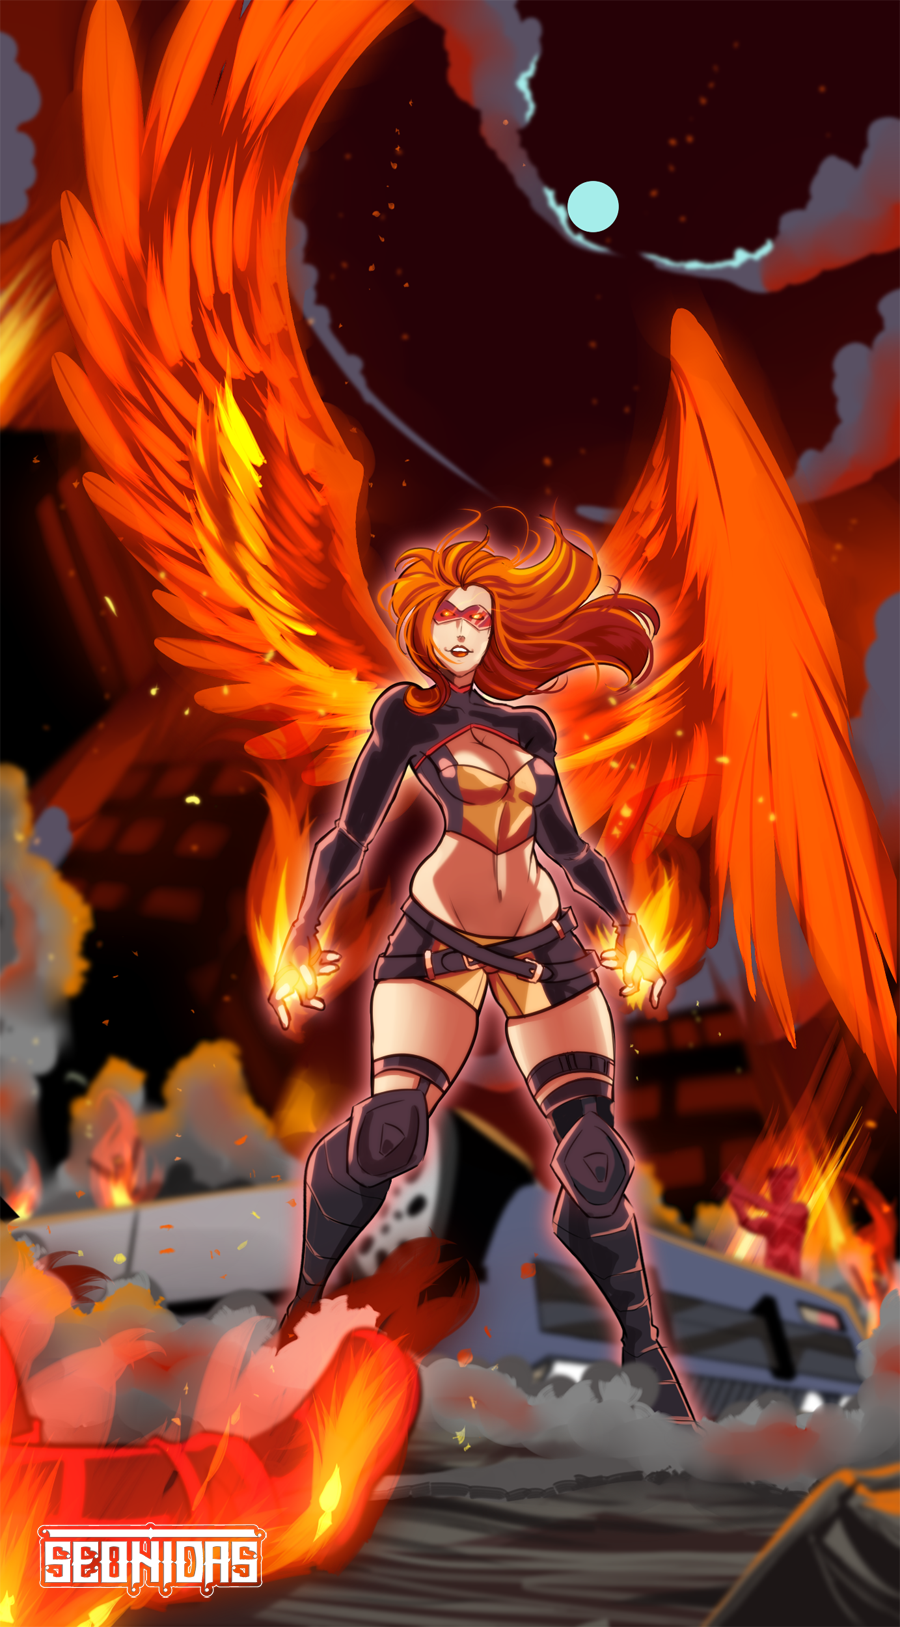 Fire girl by Seonidas